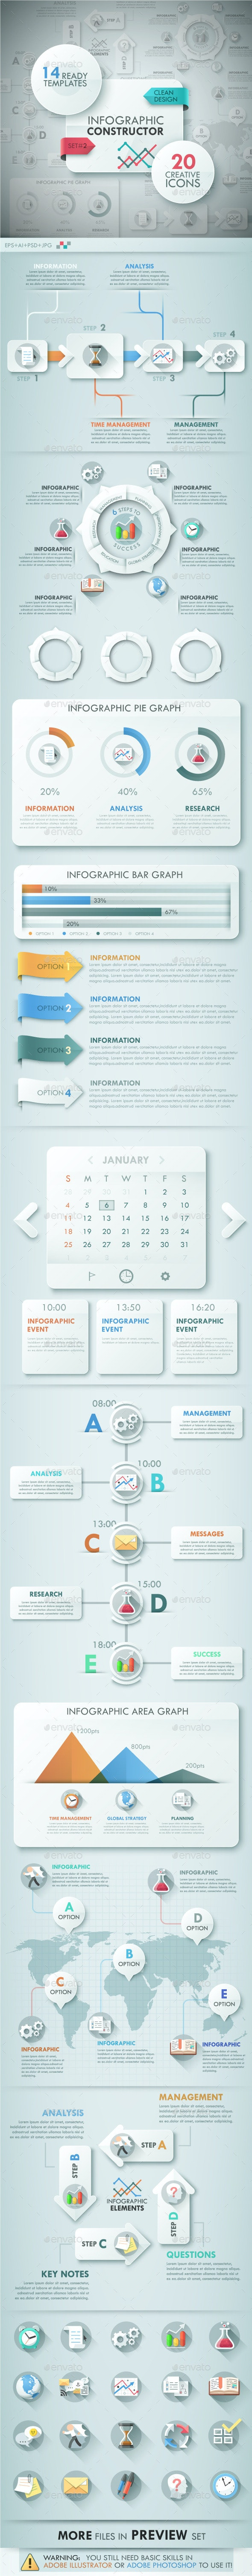 Infographic Constructor Part 2 - Infographics